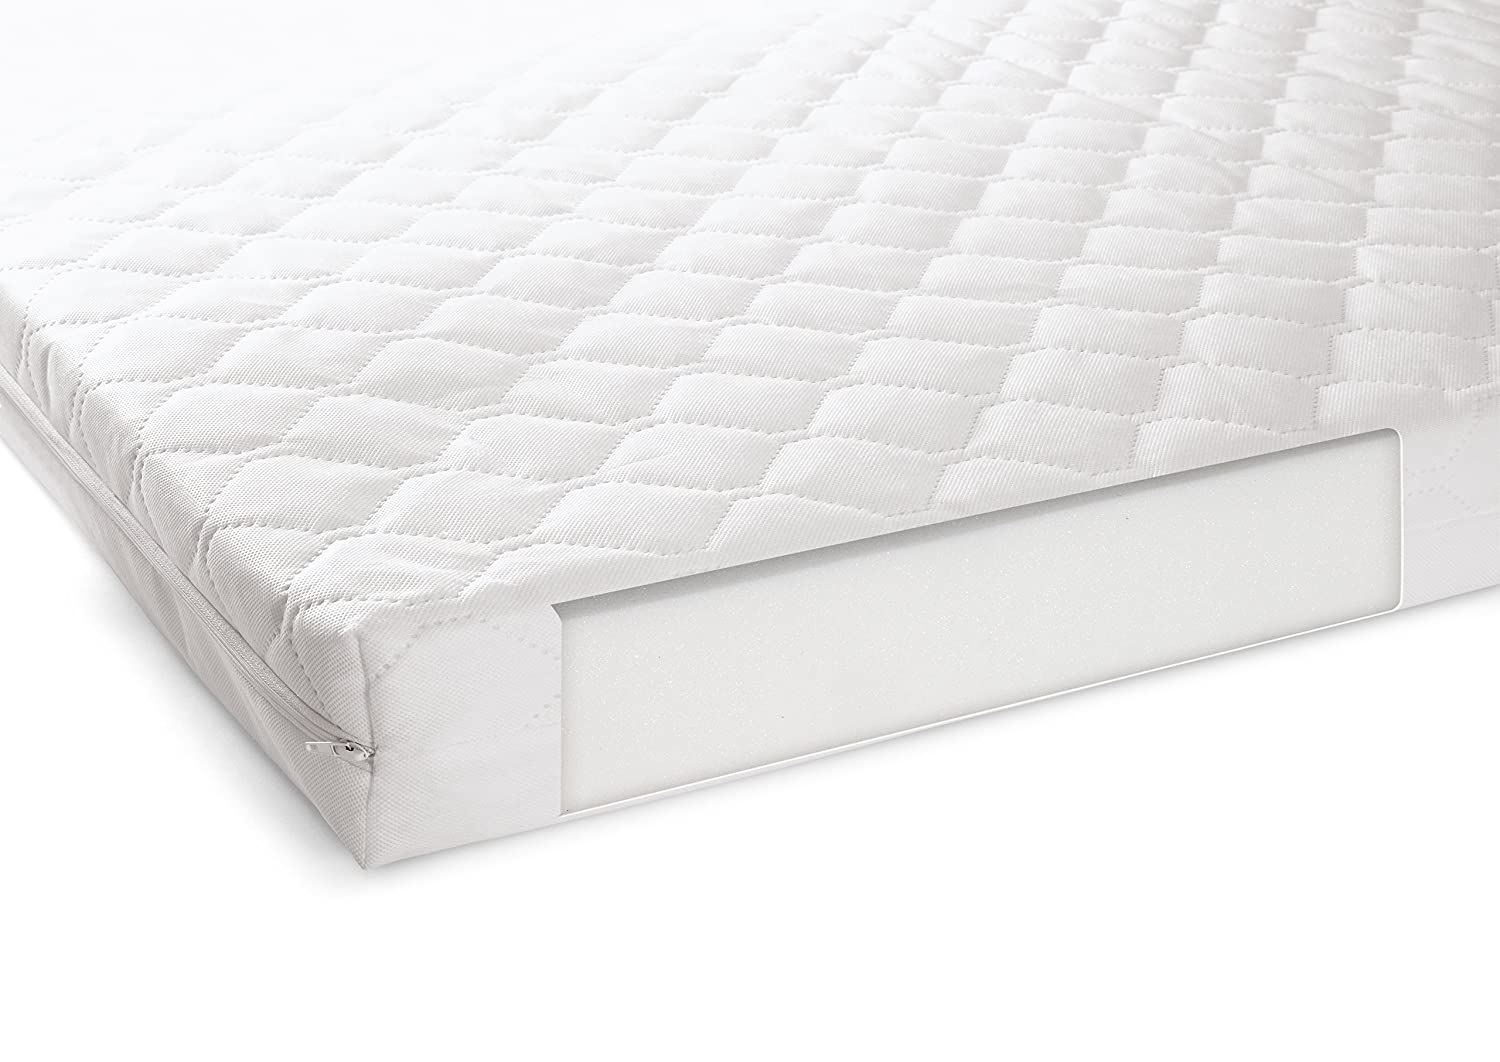 Mamas & Papas Basic Foam Cot Bed Mattress BFBSMCB00